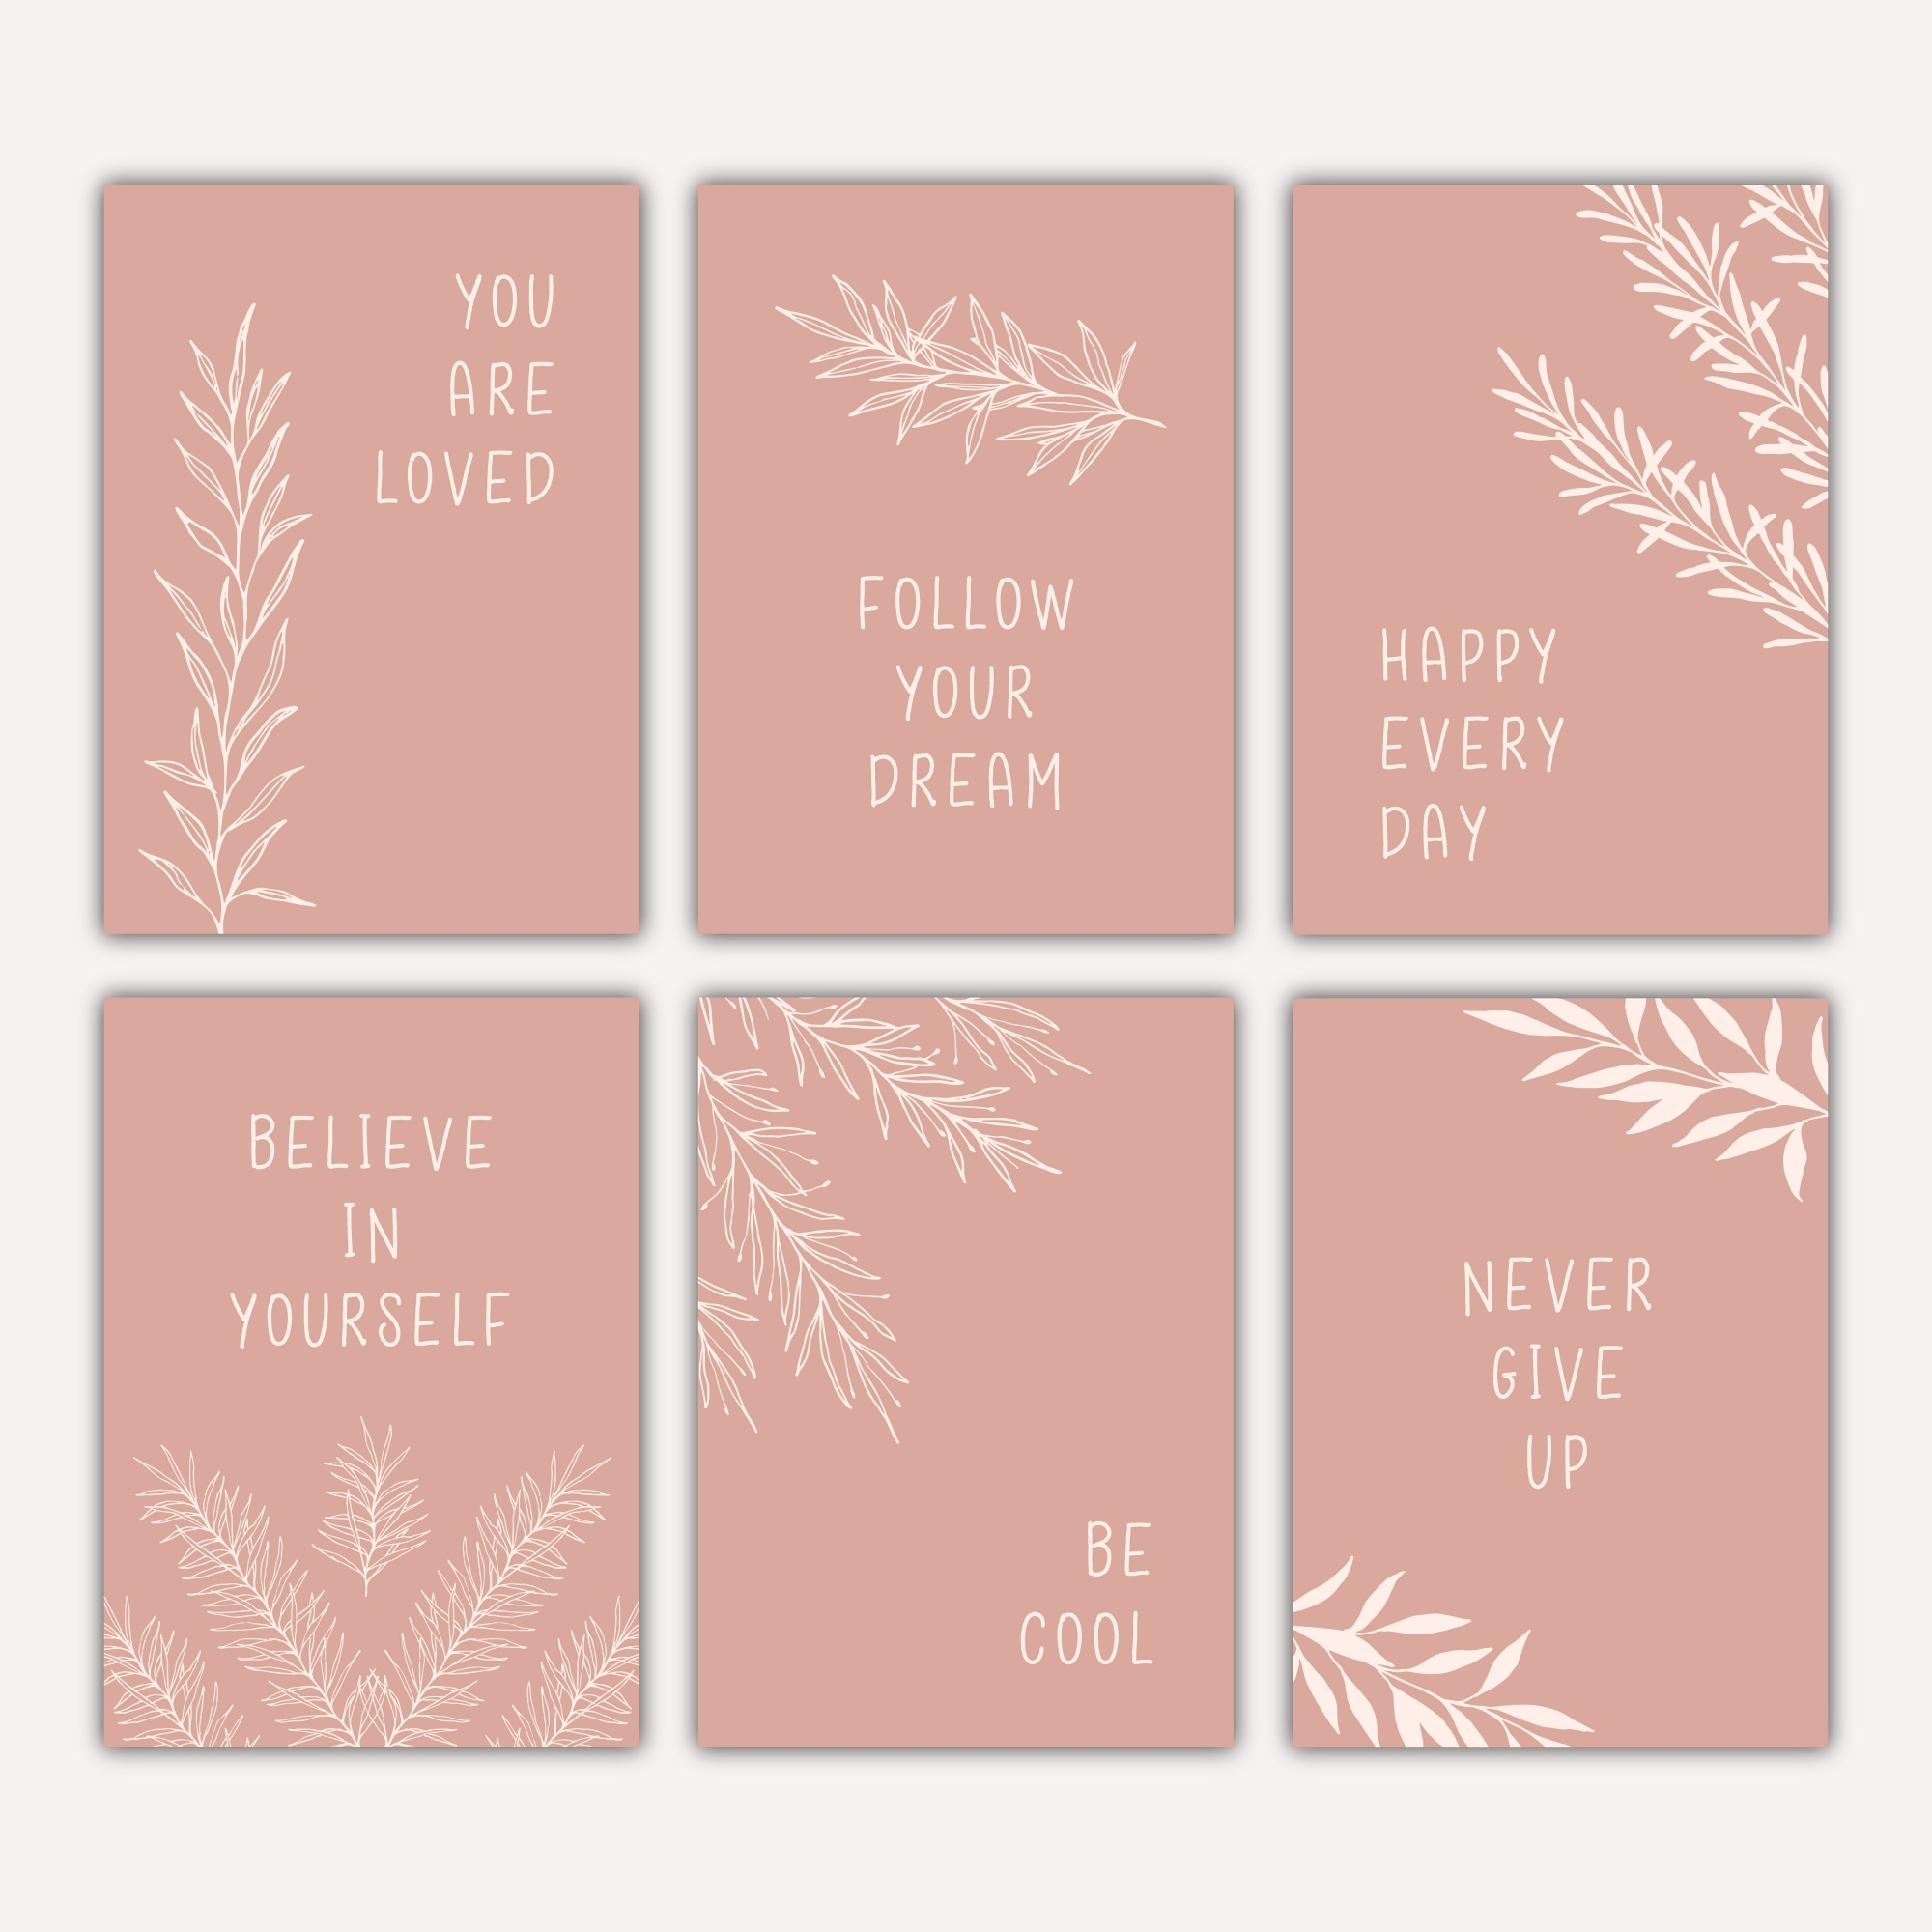 Six motivation cards with hand drawn botanical illustrations